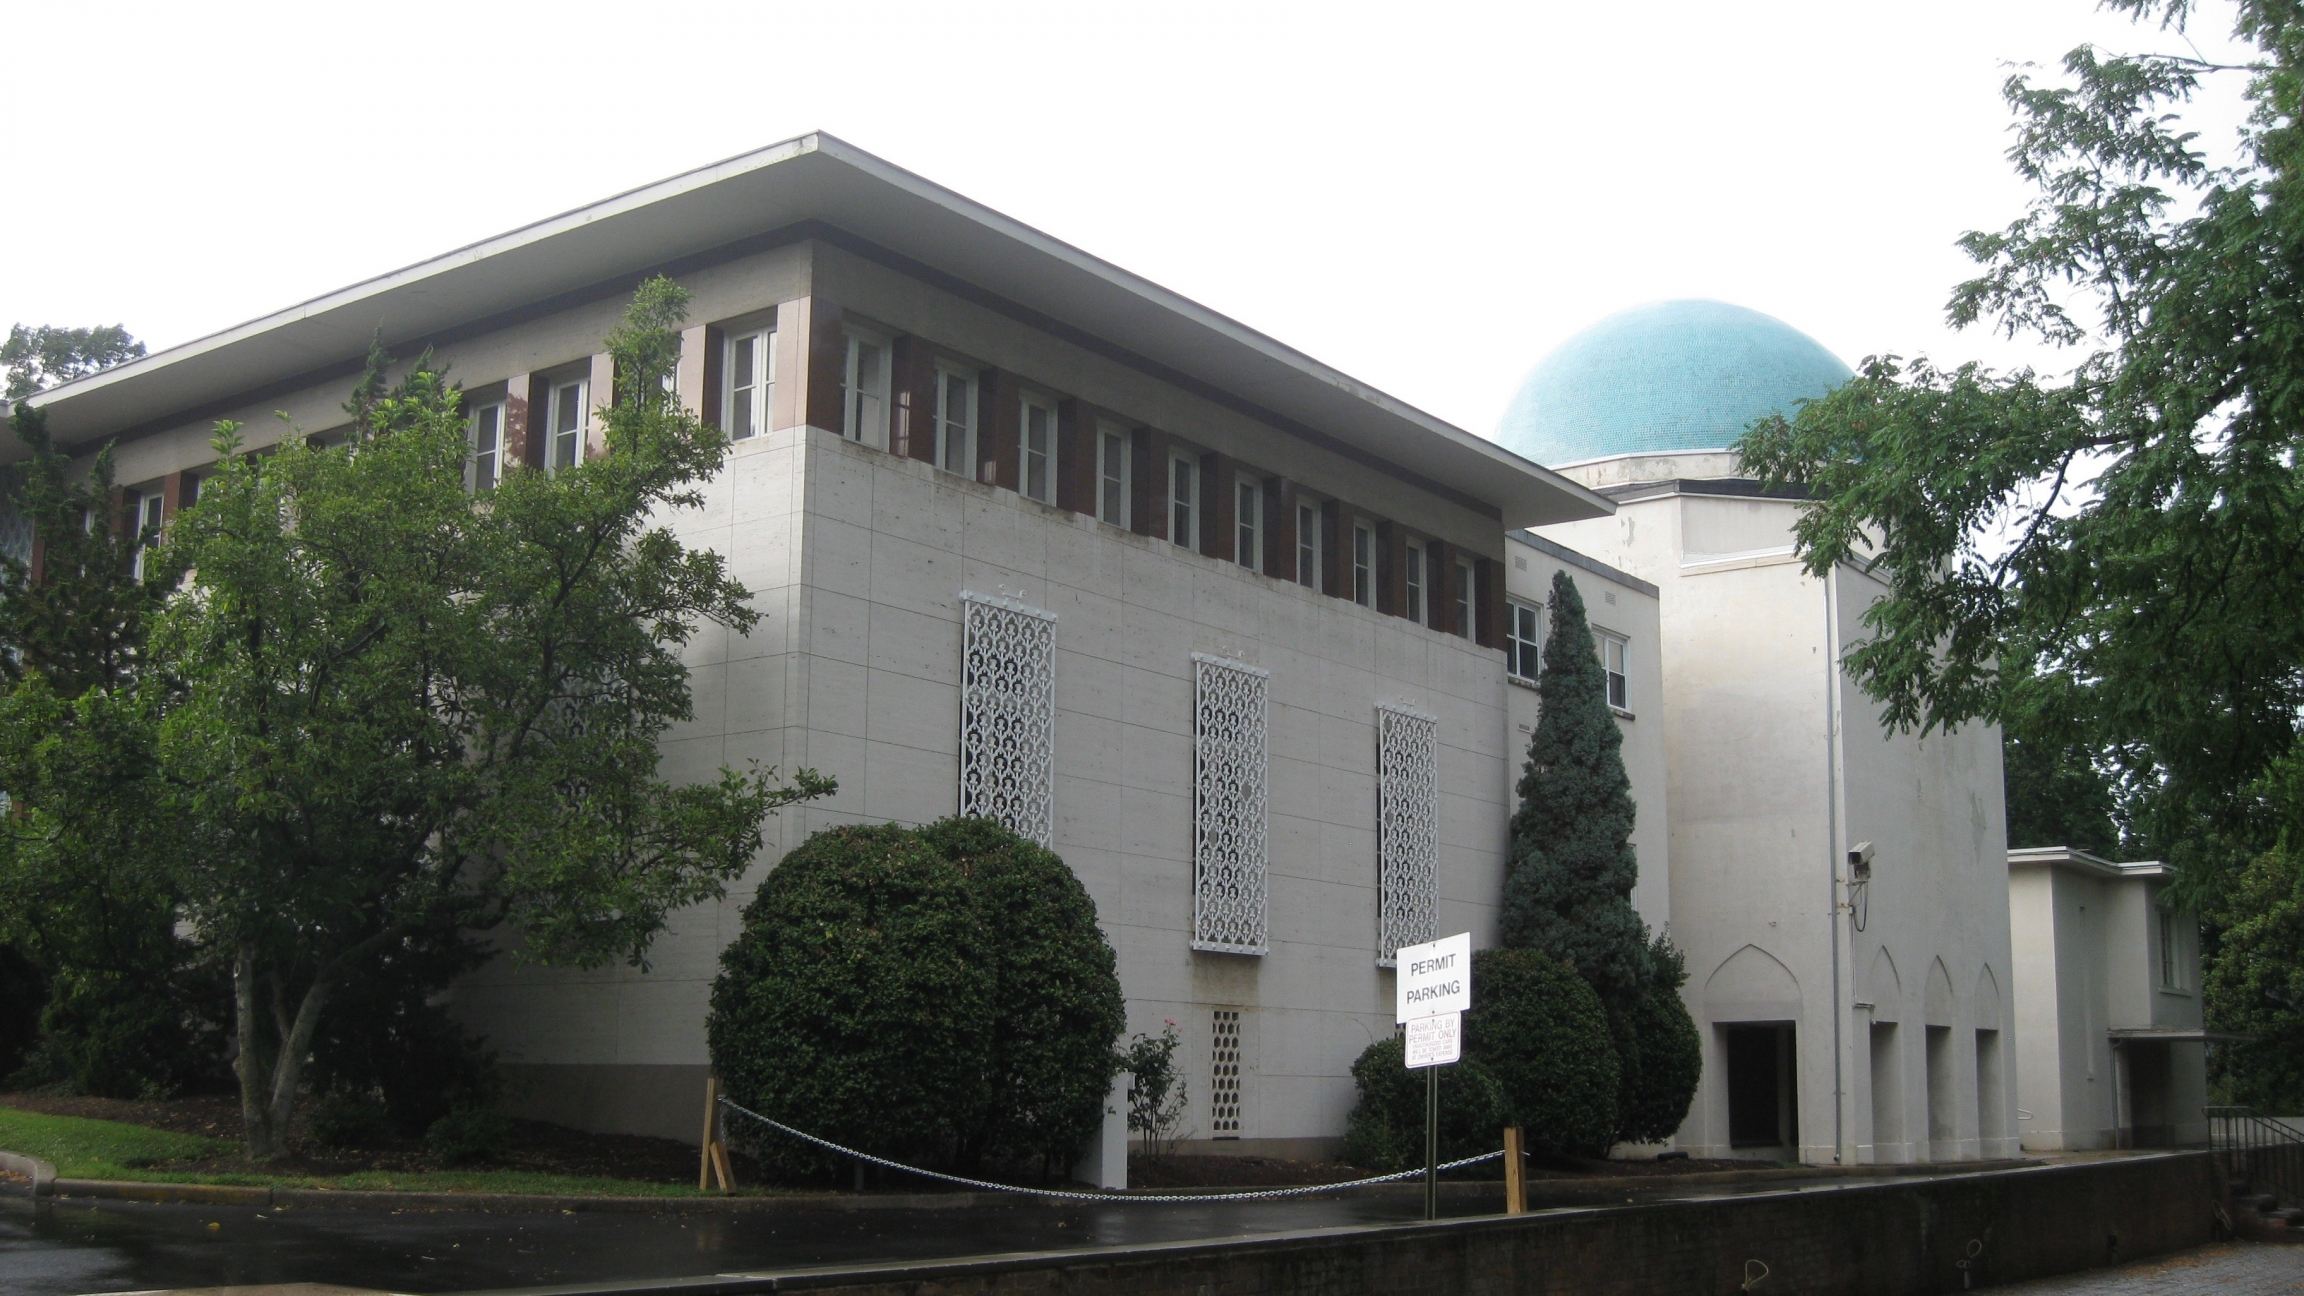 The former Iranian Embassy in Washington, DC. The US State Department is the current custodian of the building, which was built in 1959.